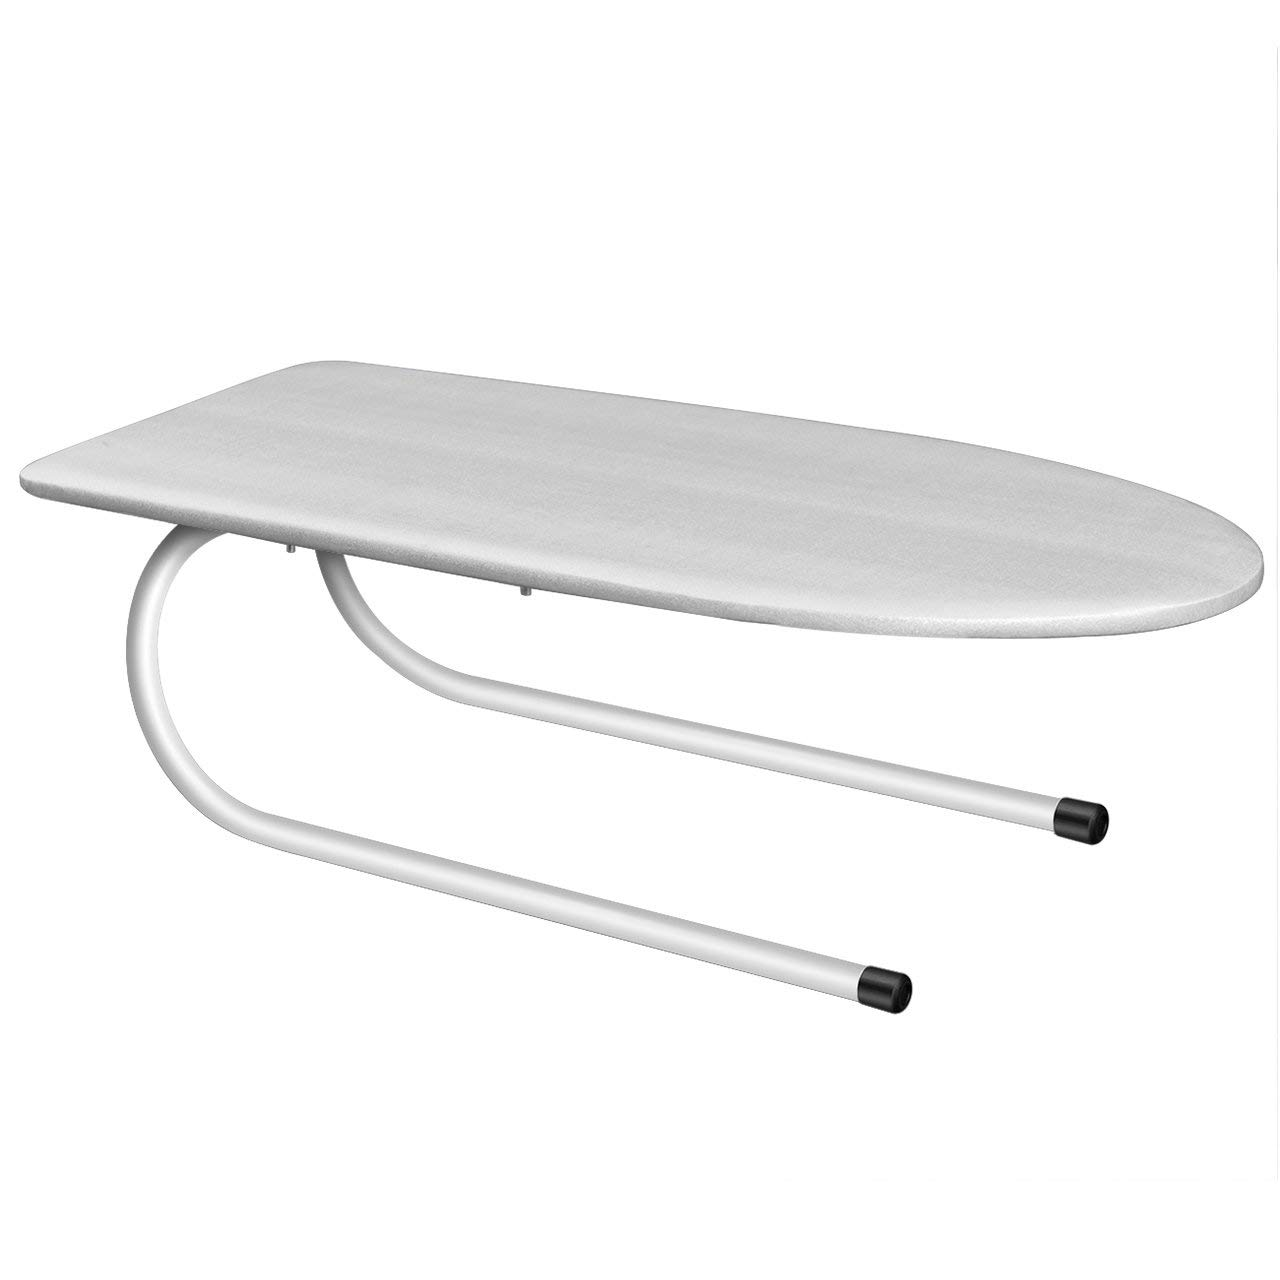 Get Quotations Paksima Tabletop Mini Ironing Board With Folding Leg Compact Design Perfect For Dorms And